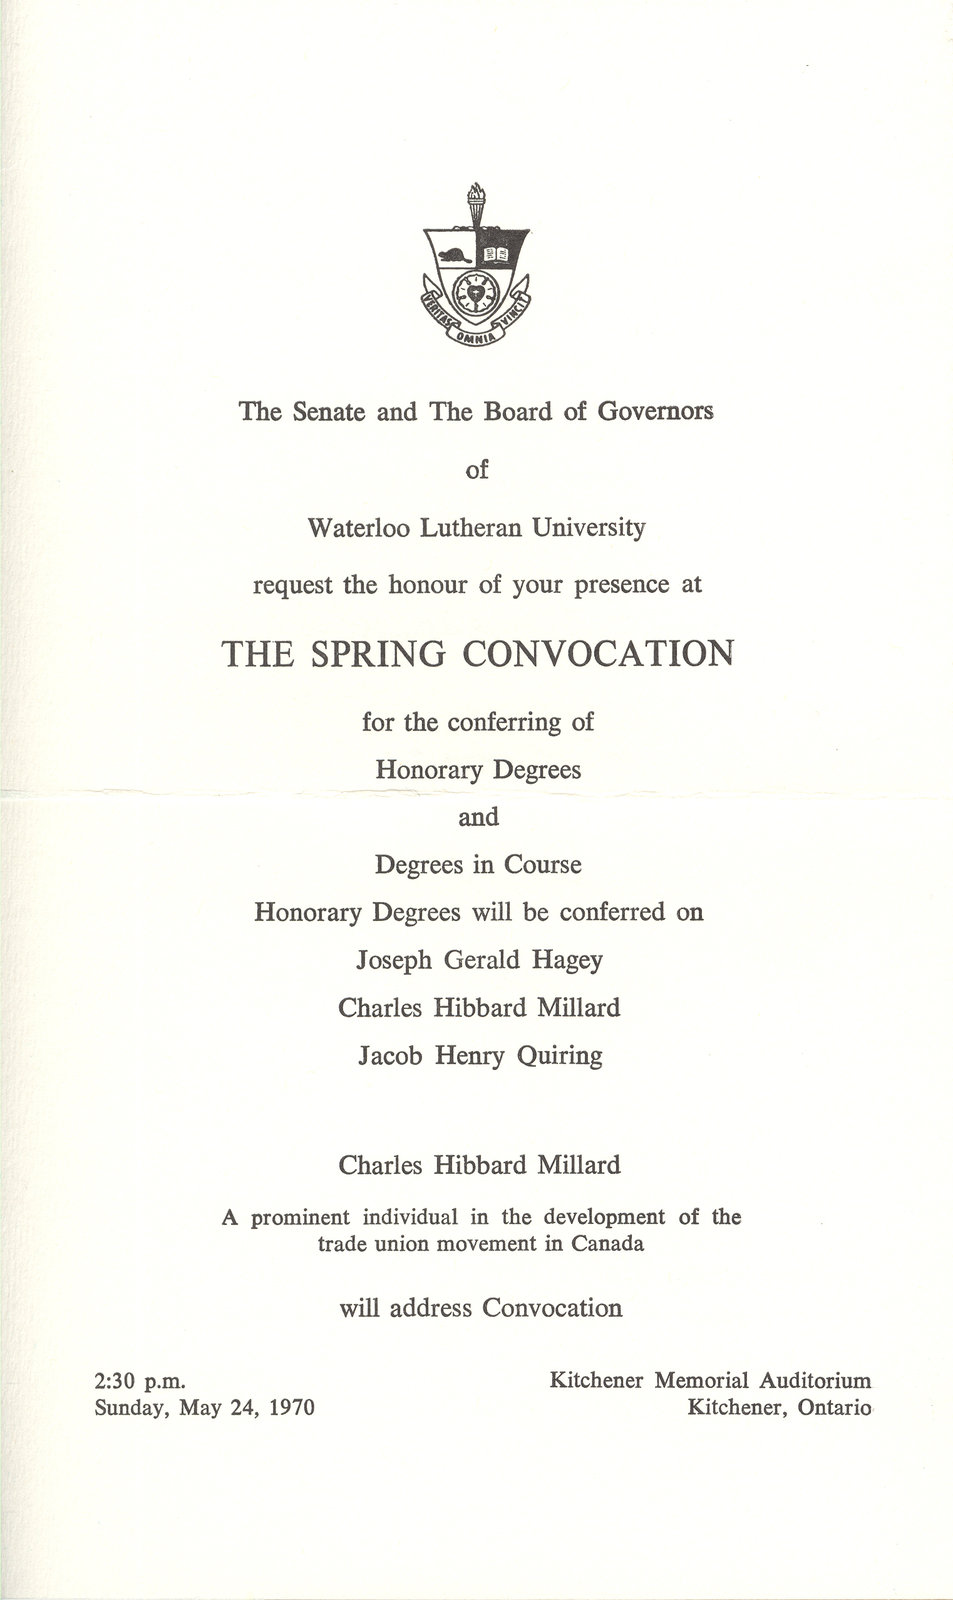 Waterloo Lutheran University spring convocation and baccalaureate service invitation, 1970